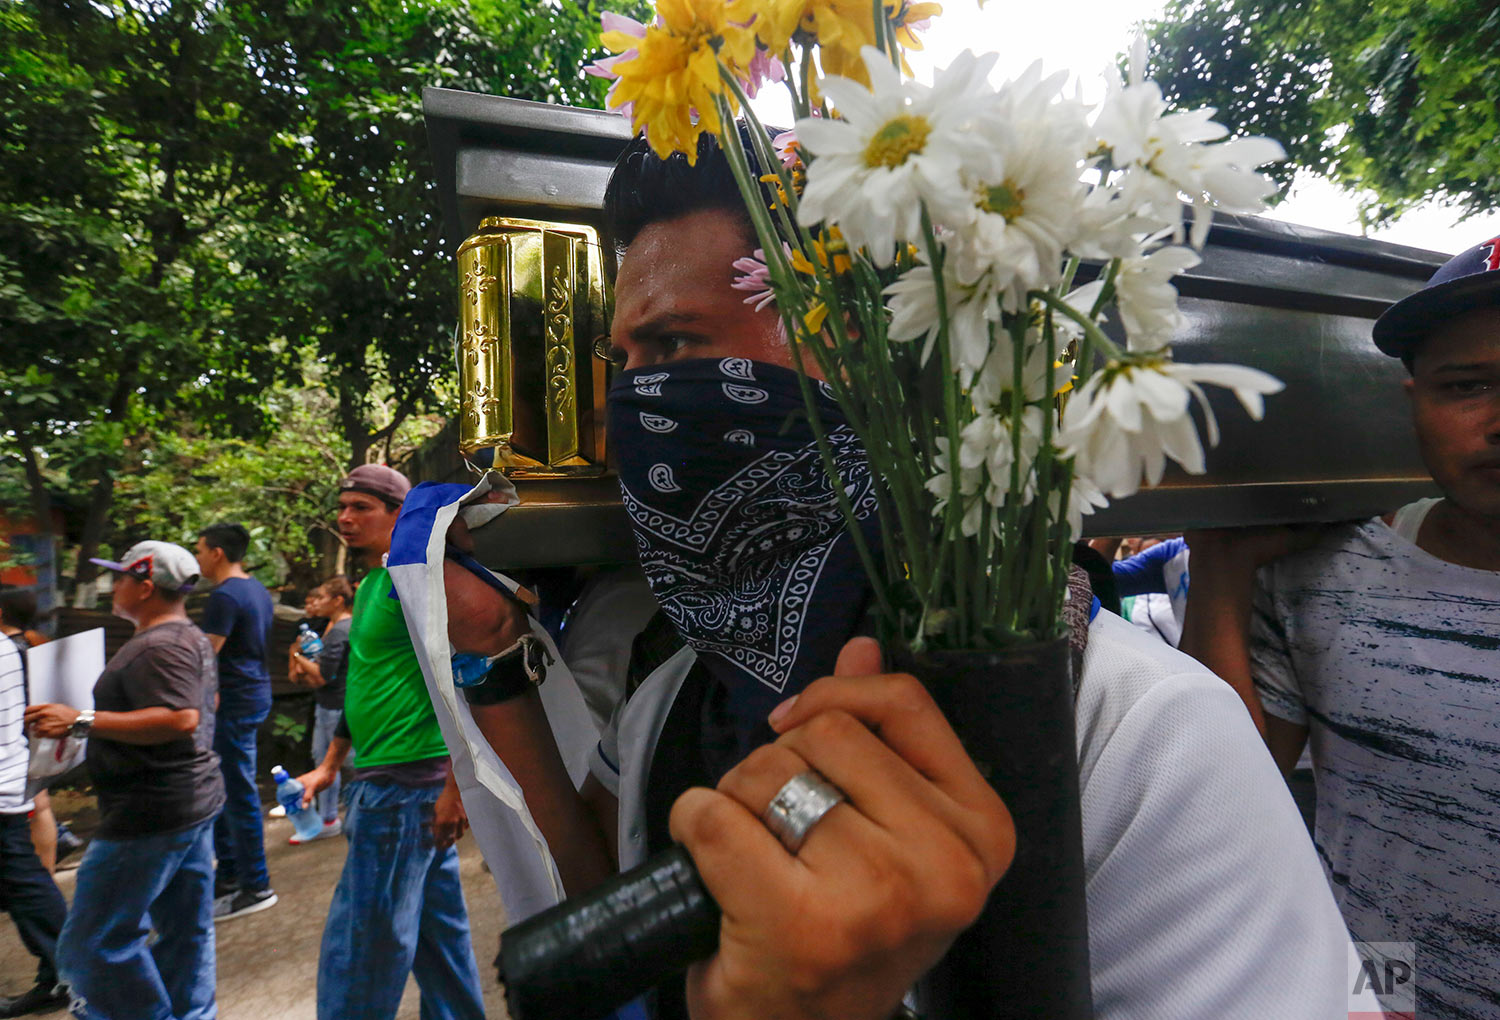 Friends and family carry the coffin of Gerald Vasquez, an engineering student who was killed during the July 14 attack by police and paramilitary forces to the National University of Managua, to be buried in Managua, Nicaragua, July 16, 2018. (AP Photo/Alfredo Zuniga)